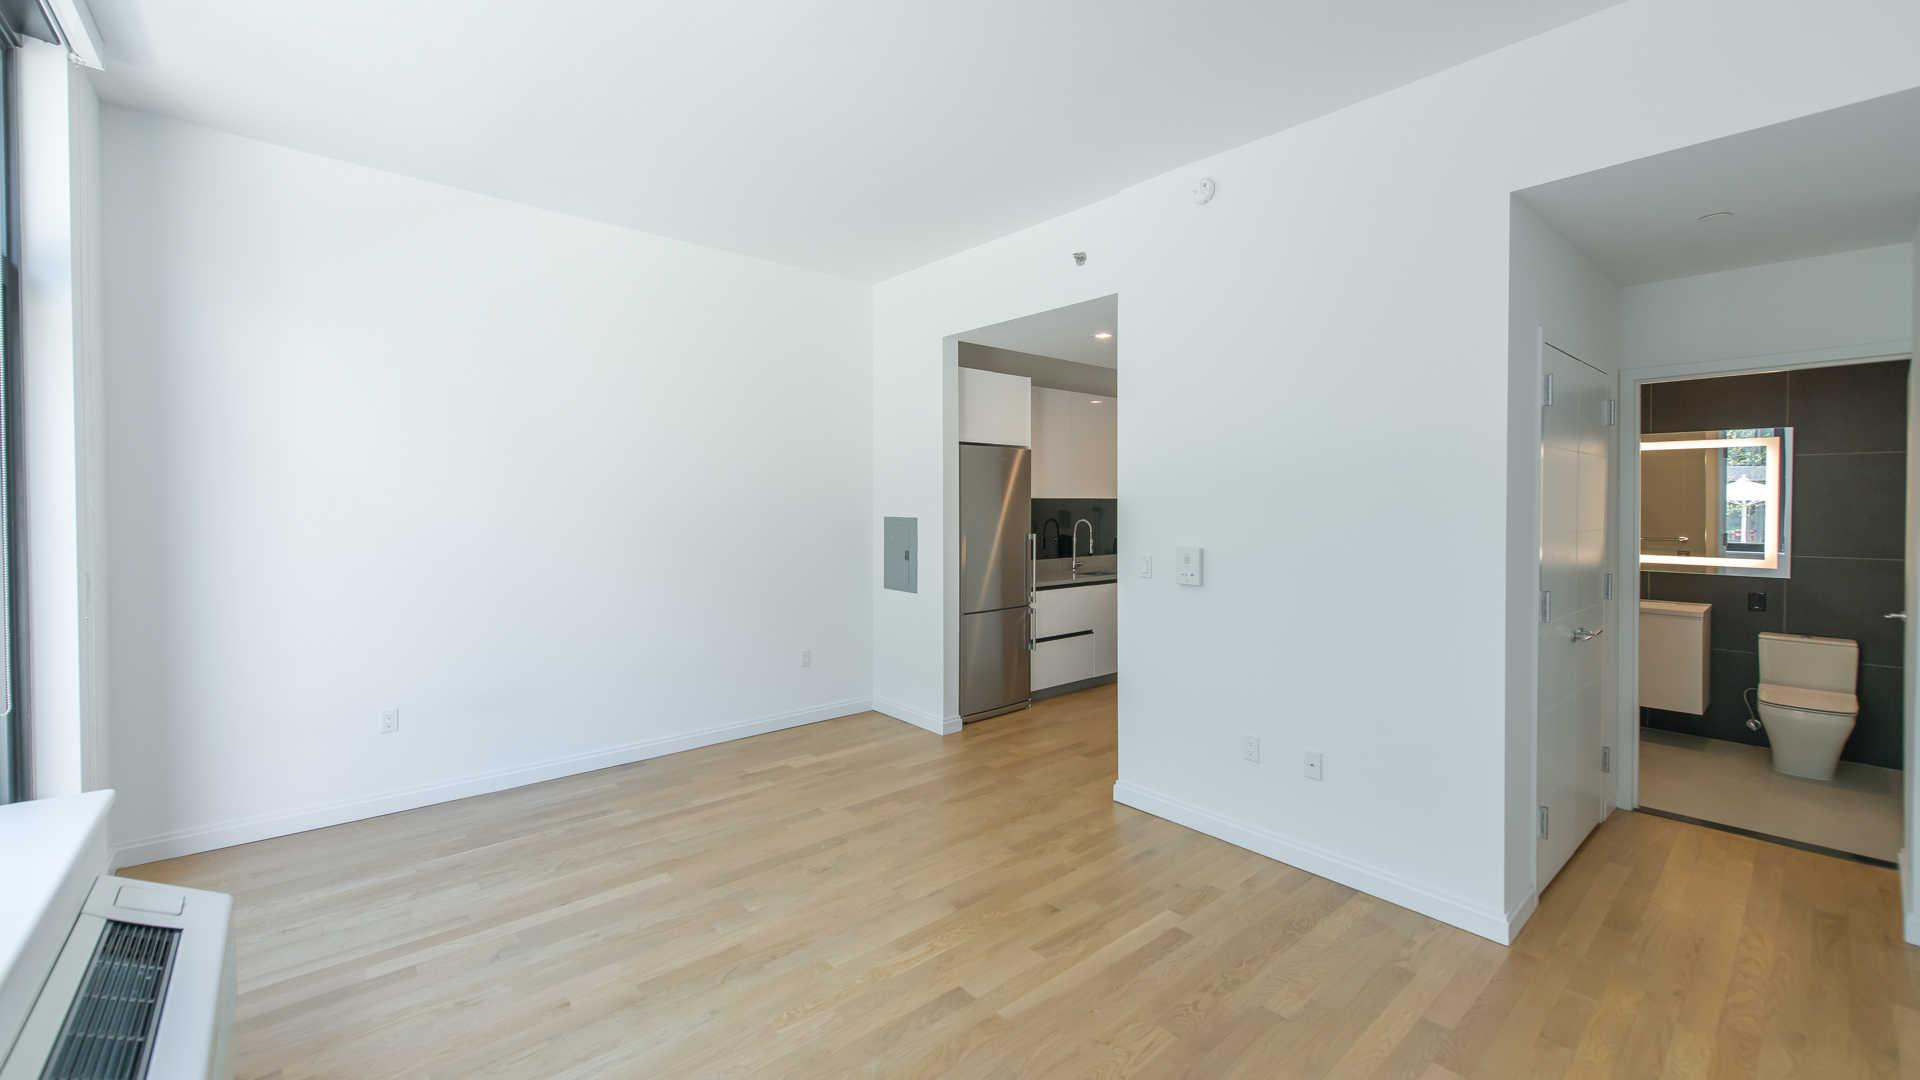 Atelier apartments new york ny walk score - One bedroom apartments in canarsie brooklyn ...